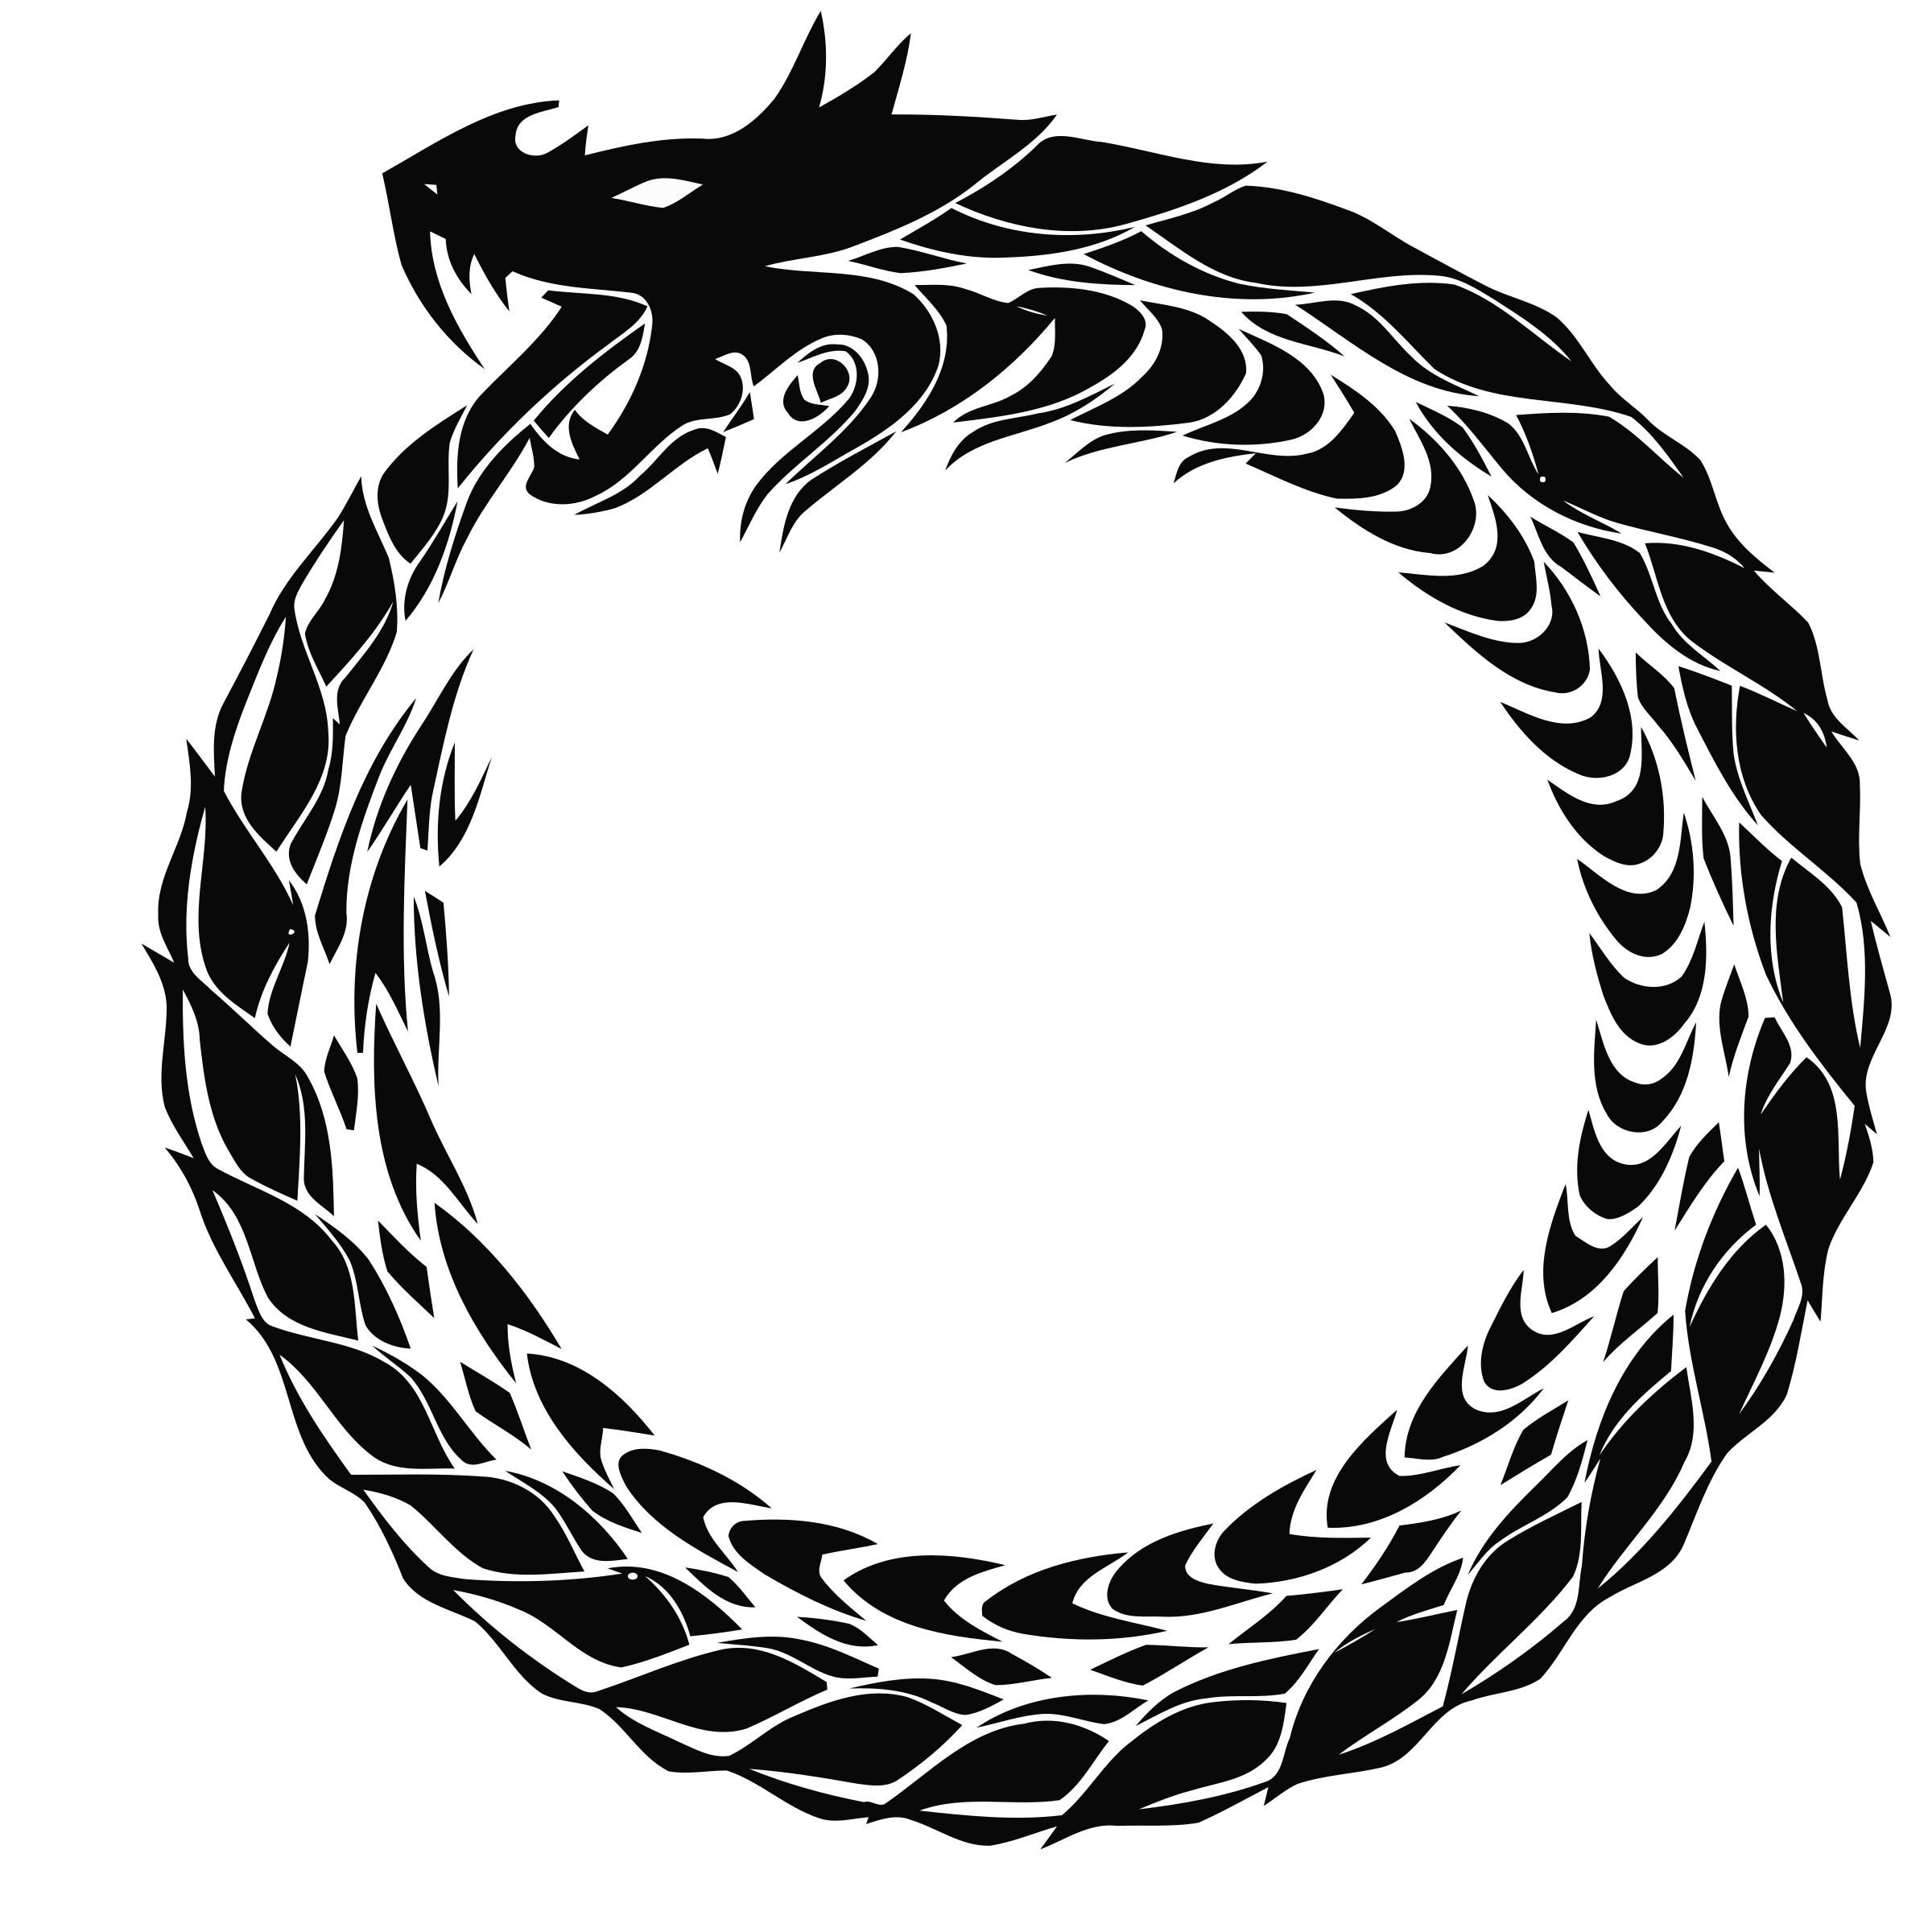 Ouroboros transparent